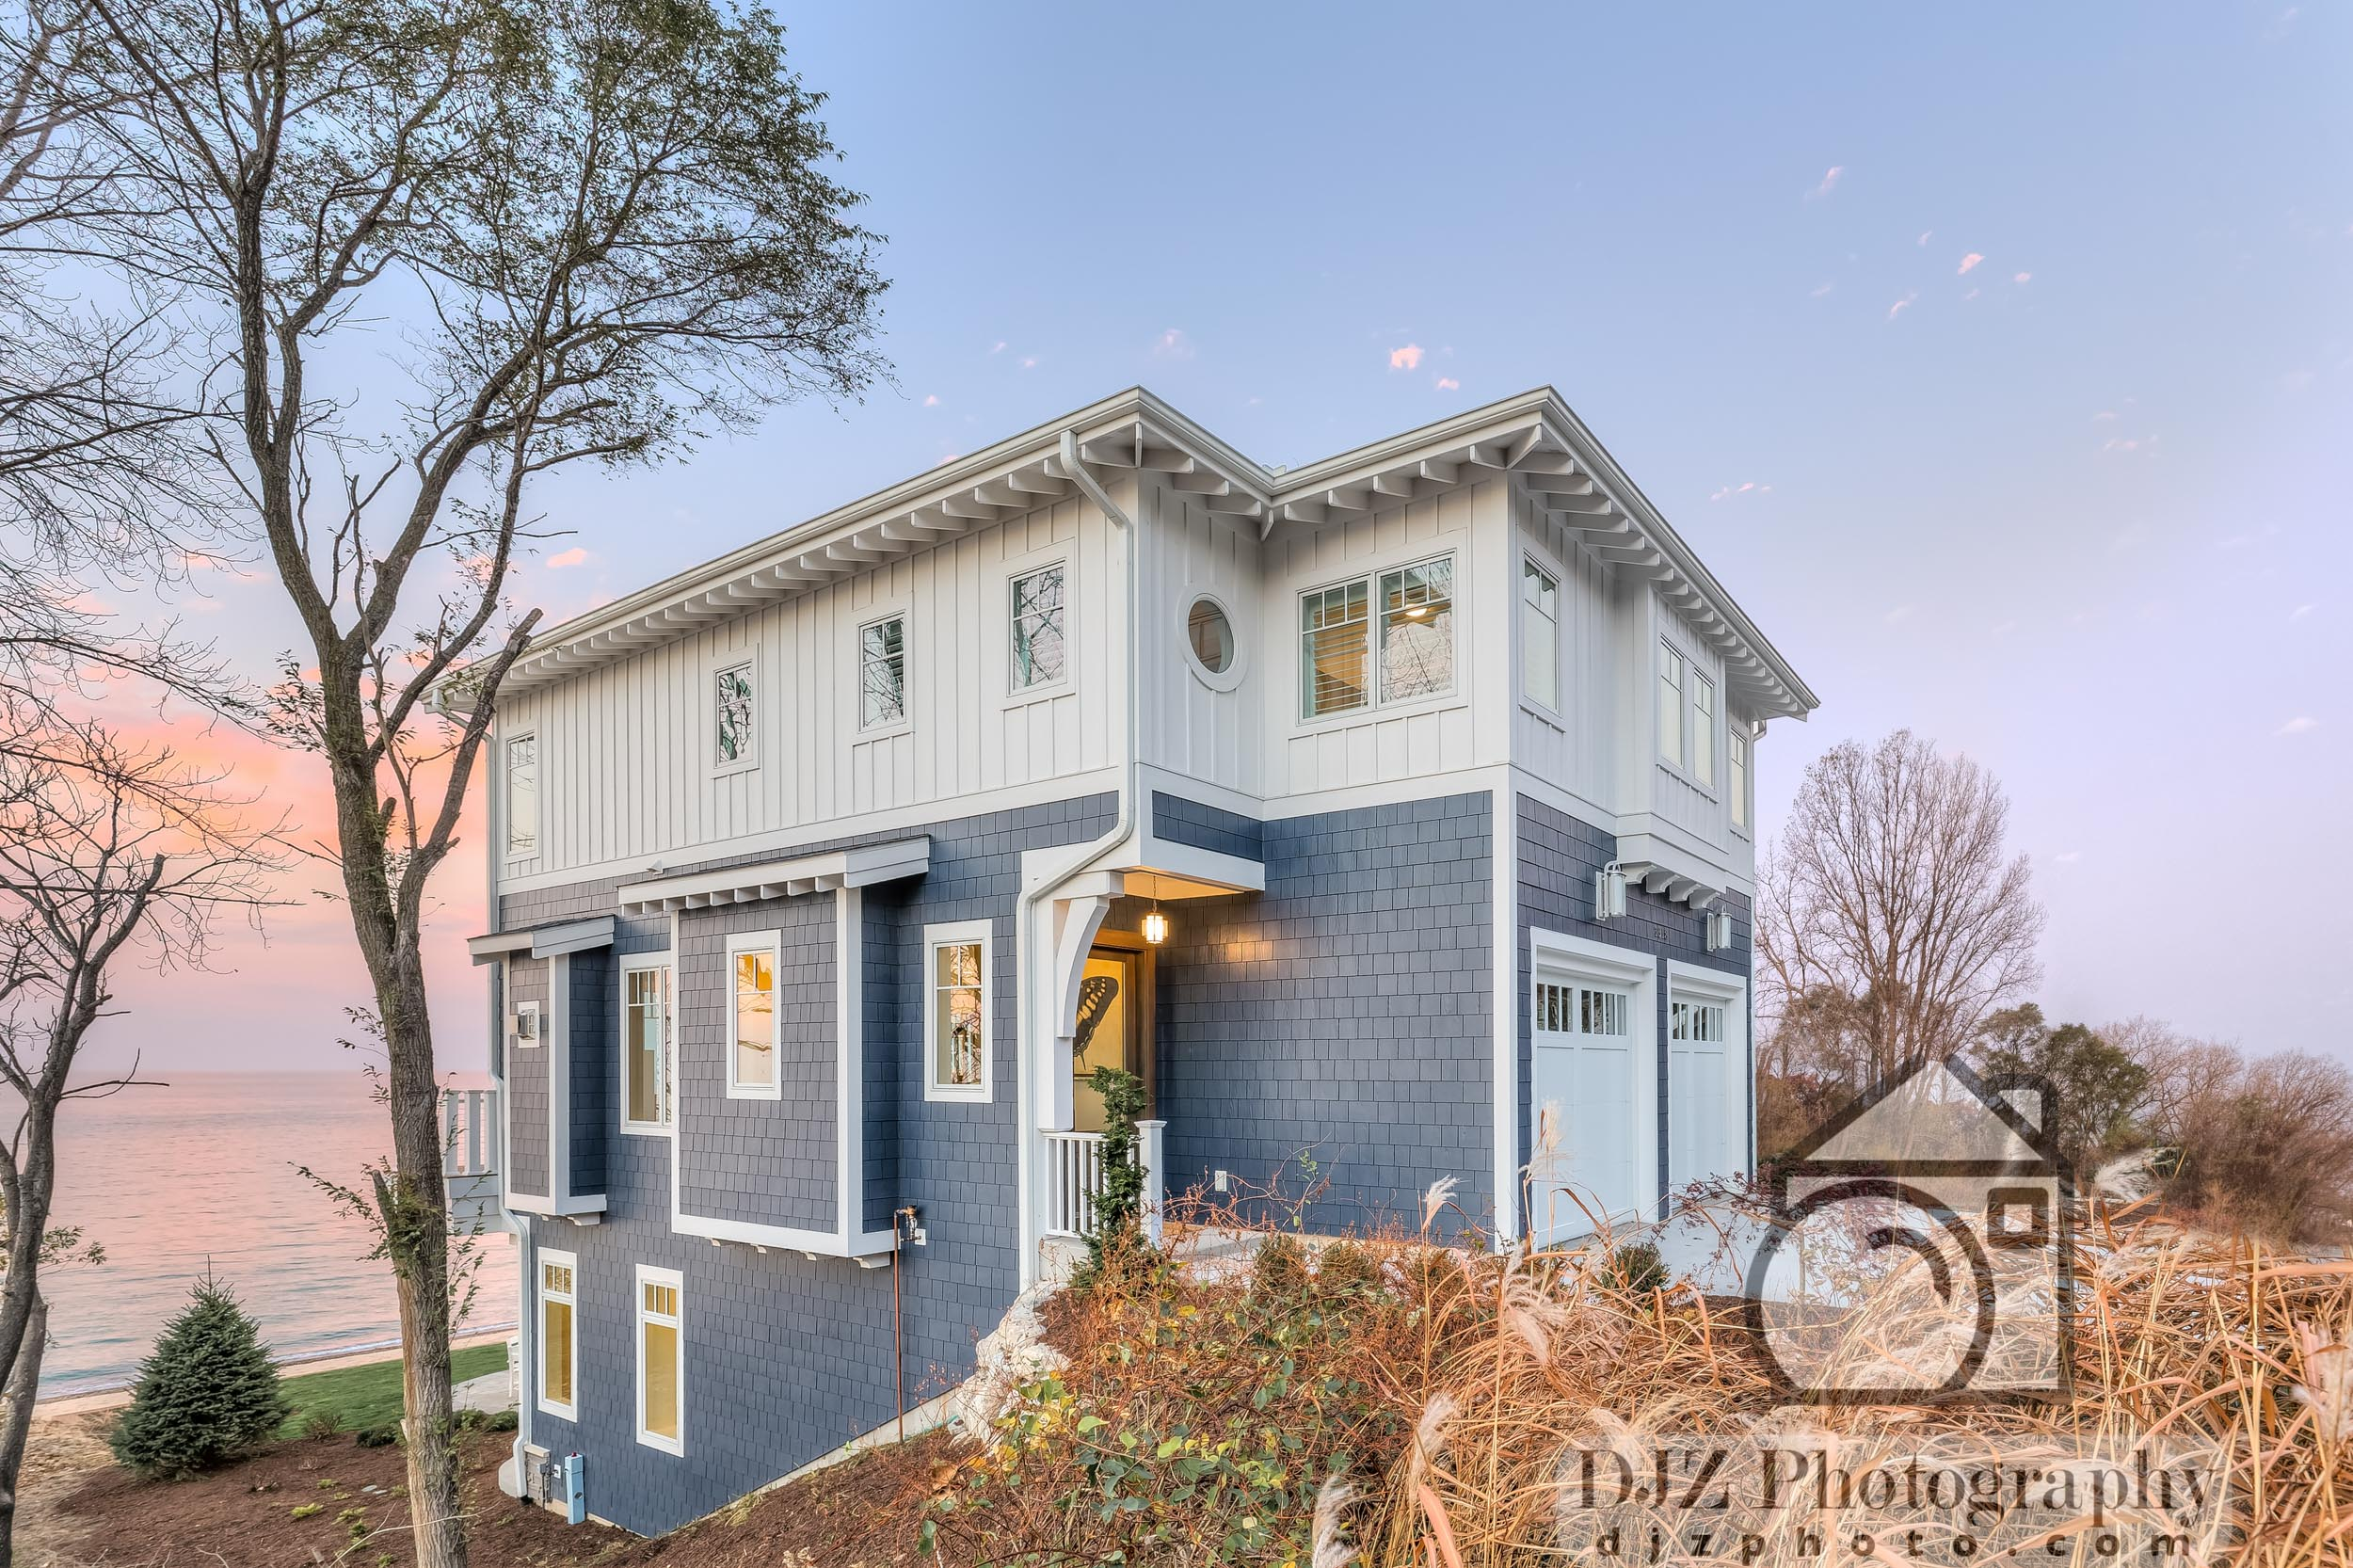 Twilight Exterior 5 - Real Estate Photography